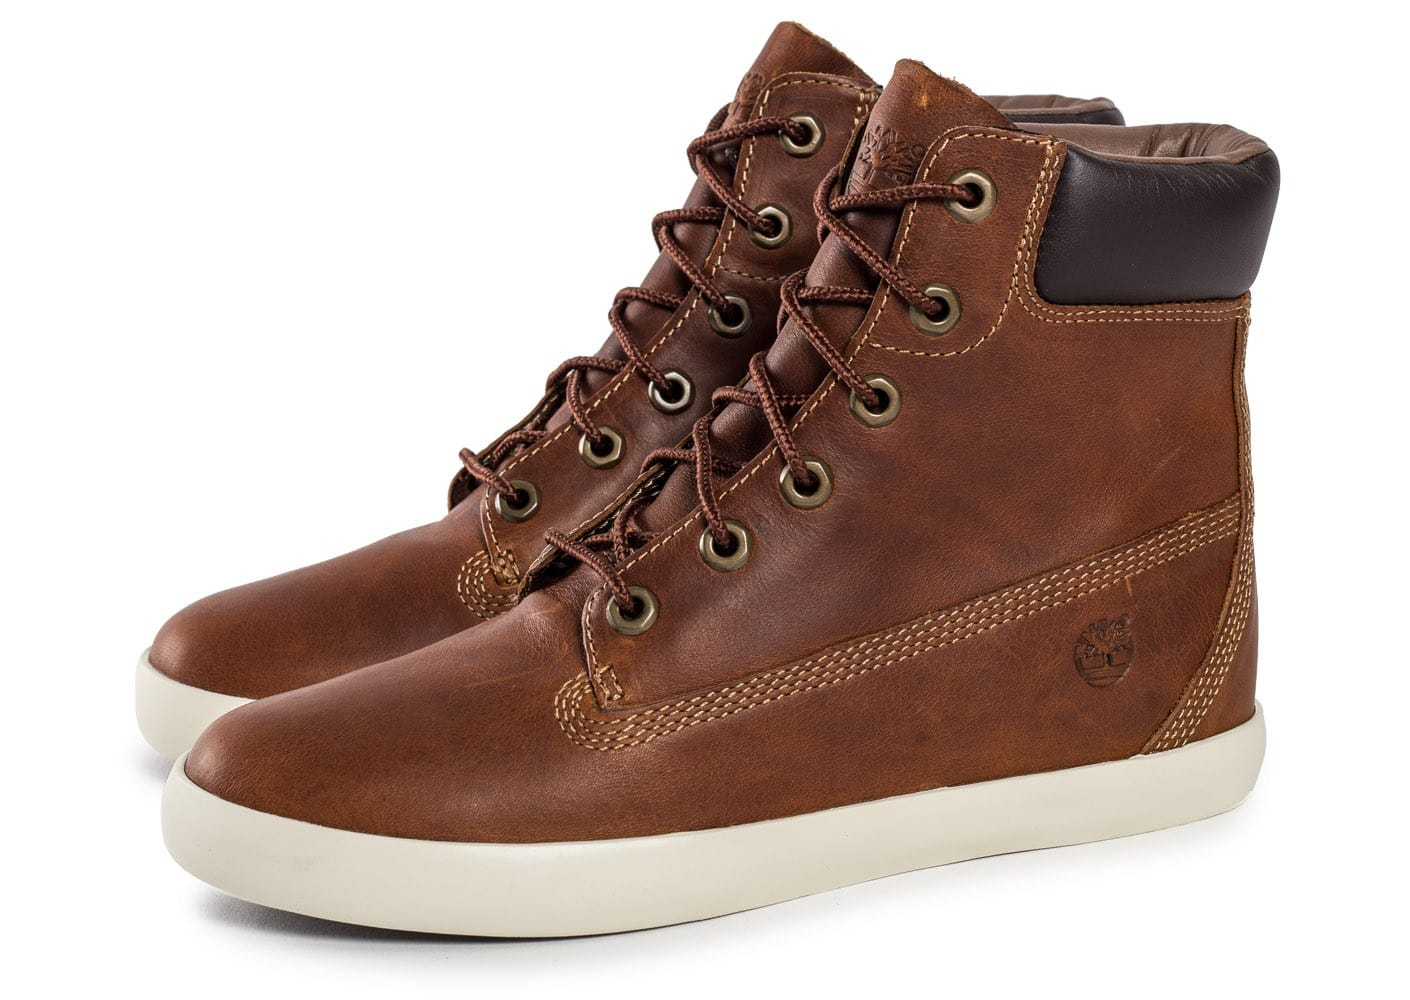 chaussures timberland moins cher,chaussures timberland